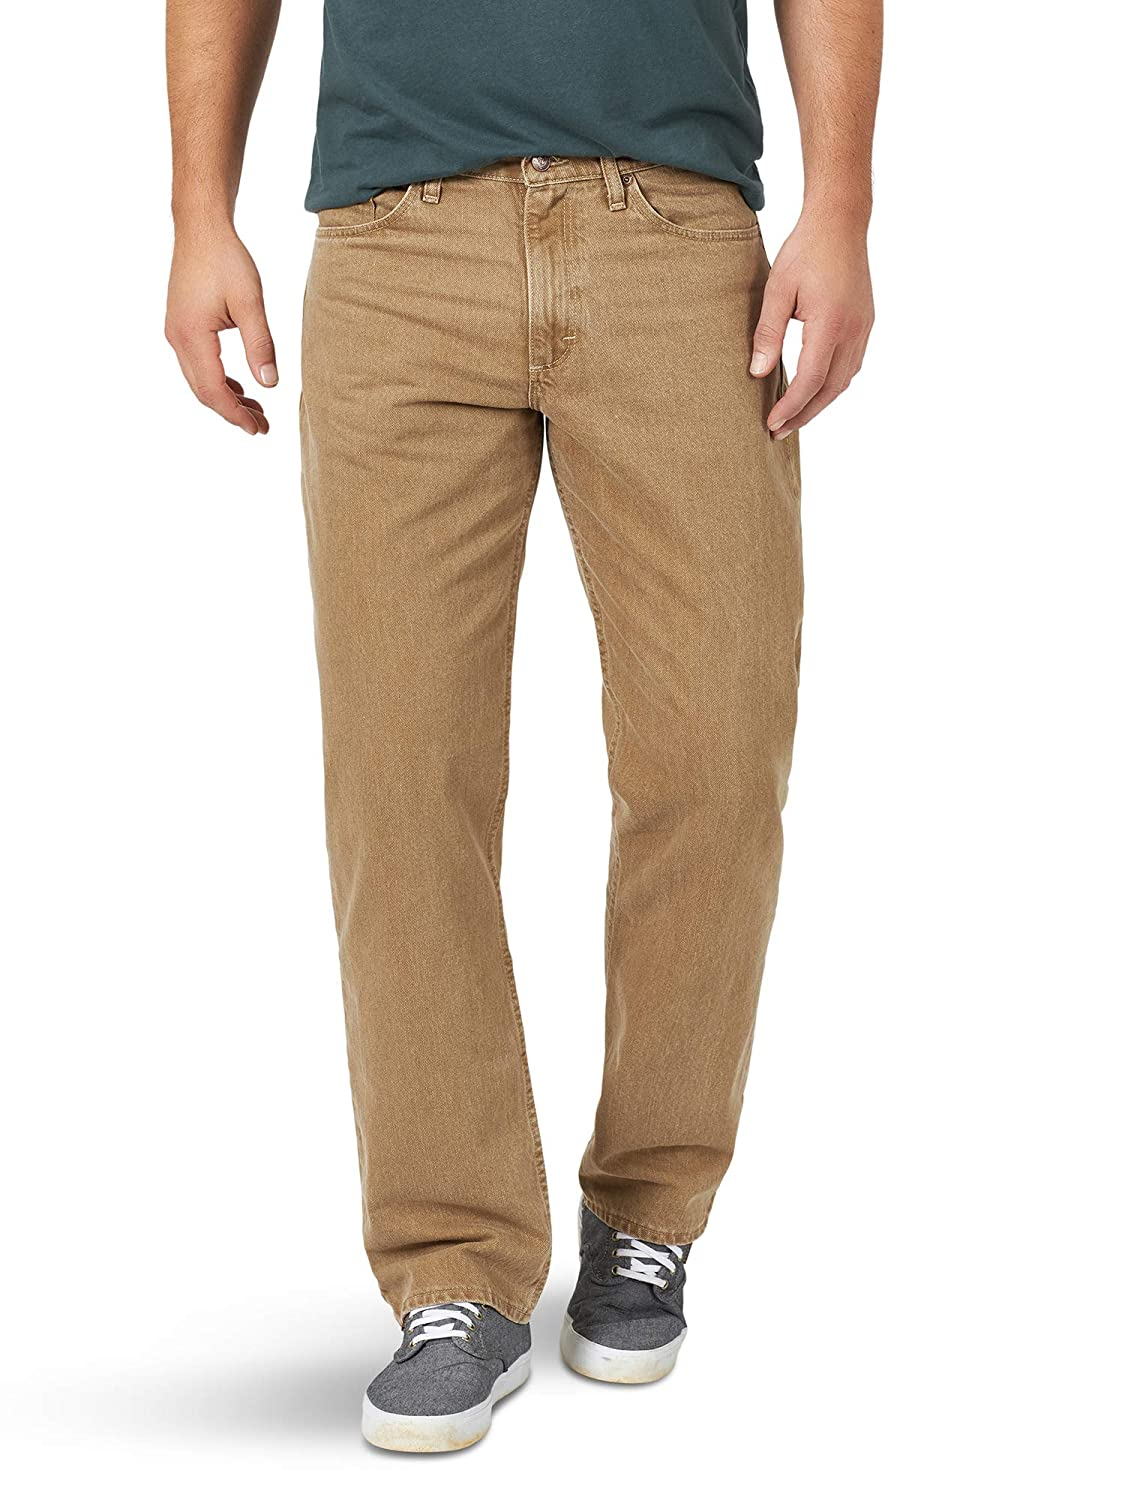 Wrangler Mens Big and Tall Authentics Relaxed Fit Jean-Cotton